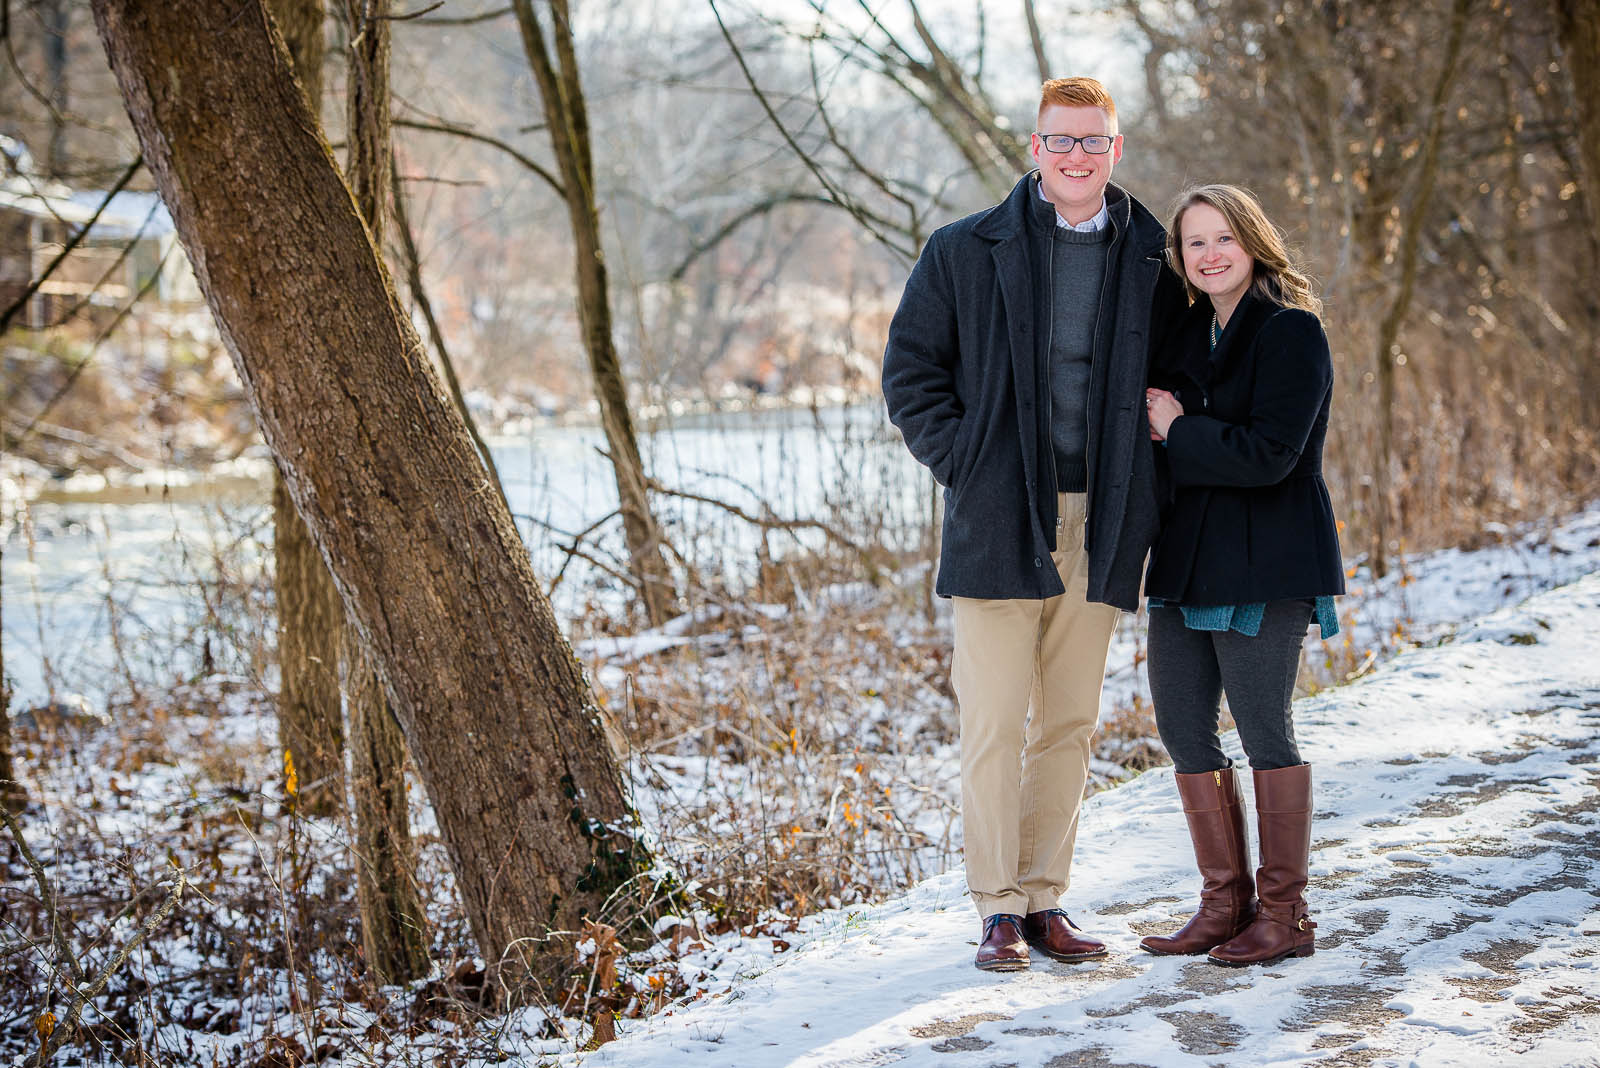 Eric_and_Christy_Photography_Engagement_Erica_Mike-1